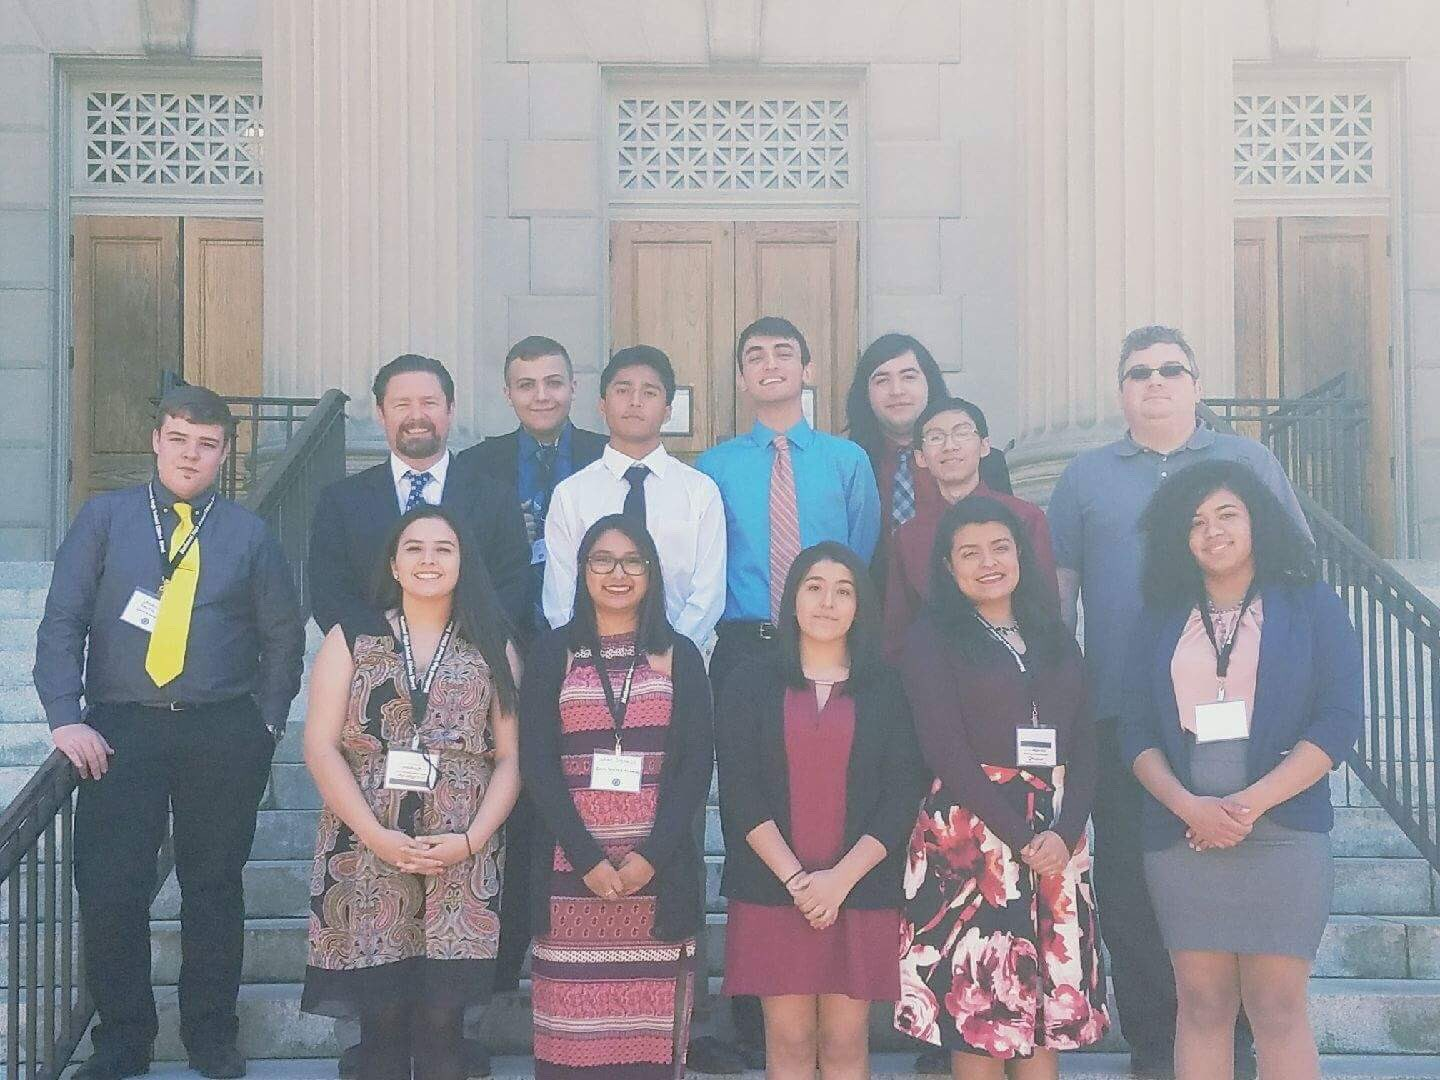 So proud of @DSAOKC ethics team representing Oklahoma well at Nationals. #oklaed #nhseb https://t.co/bVwMXWxjW3